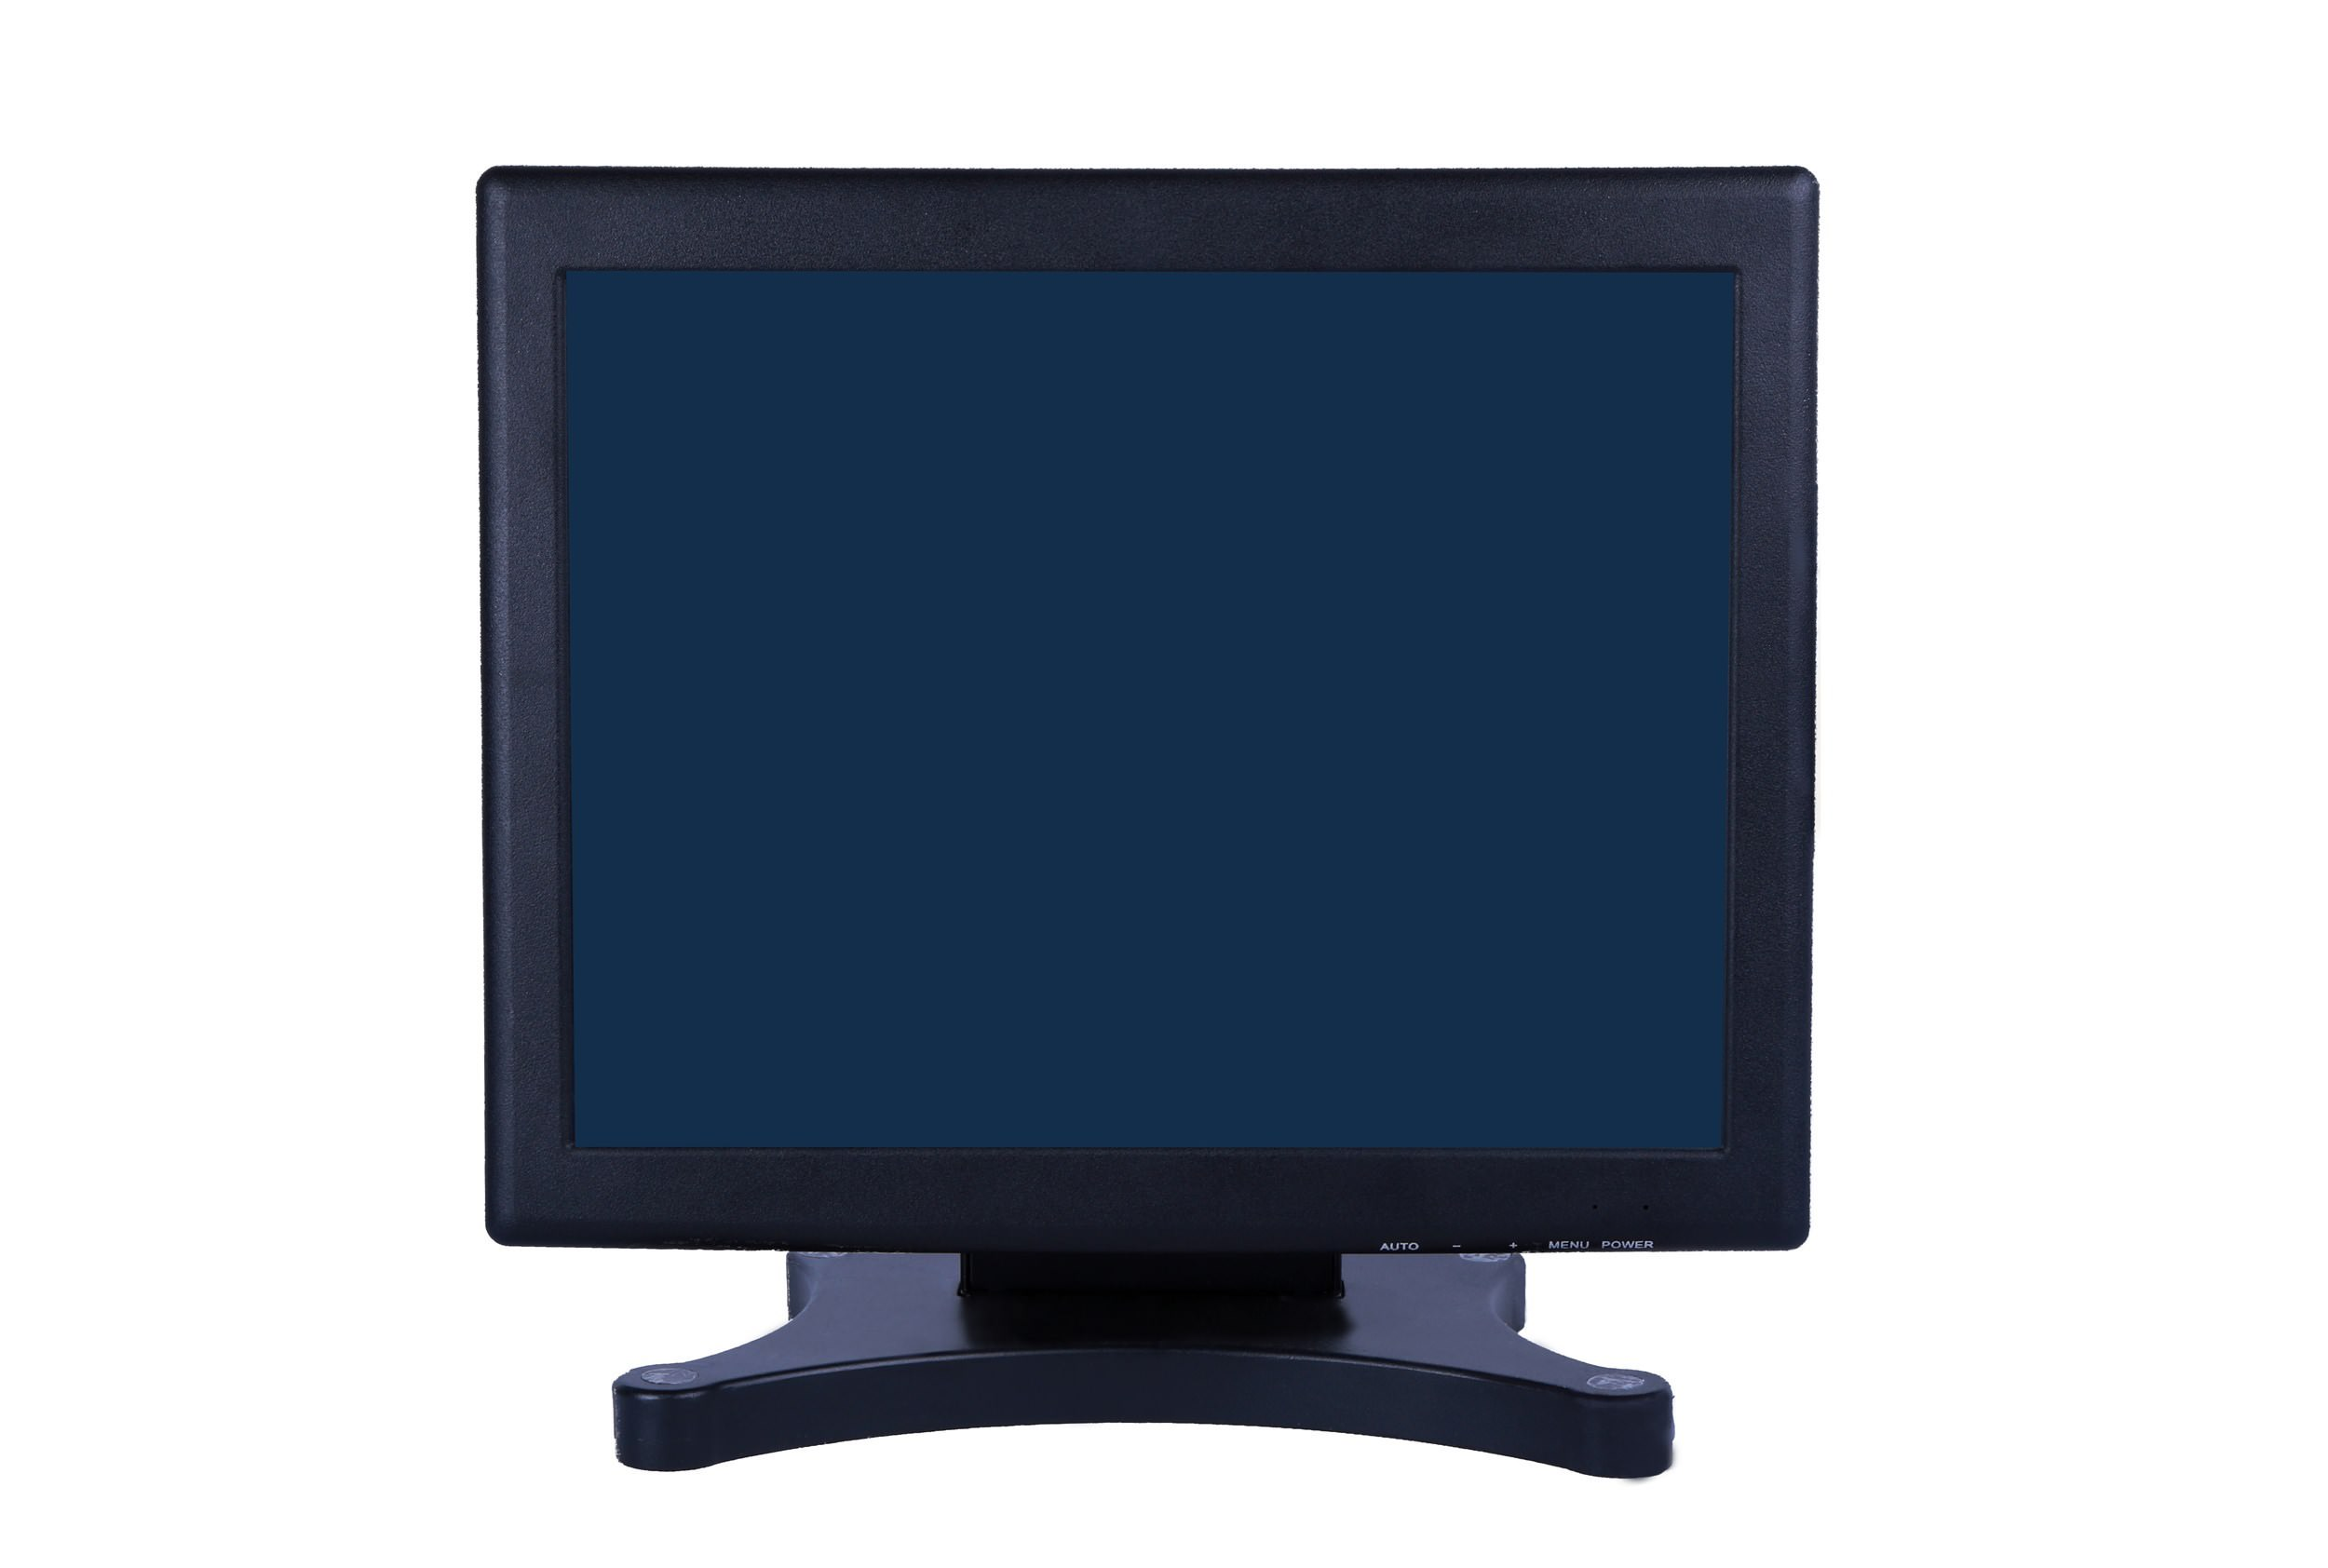 MONITOR TACTIL BLUEBEE 15 NEGRO USB TM -215